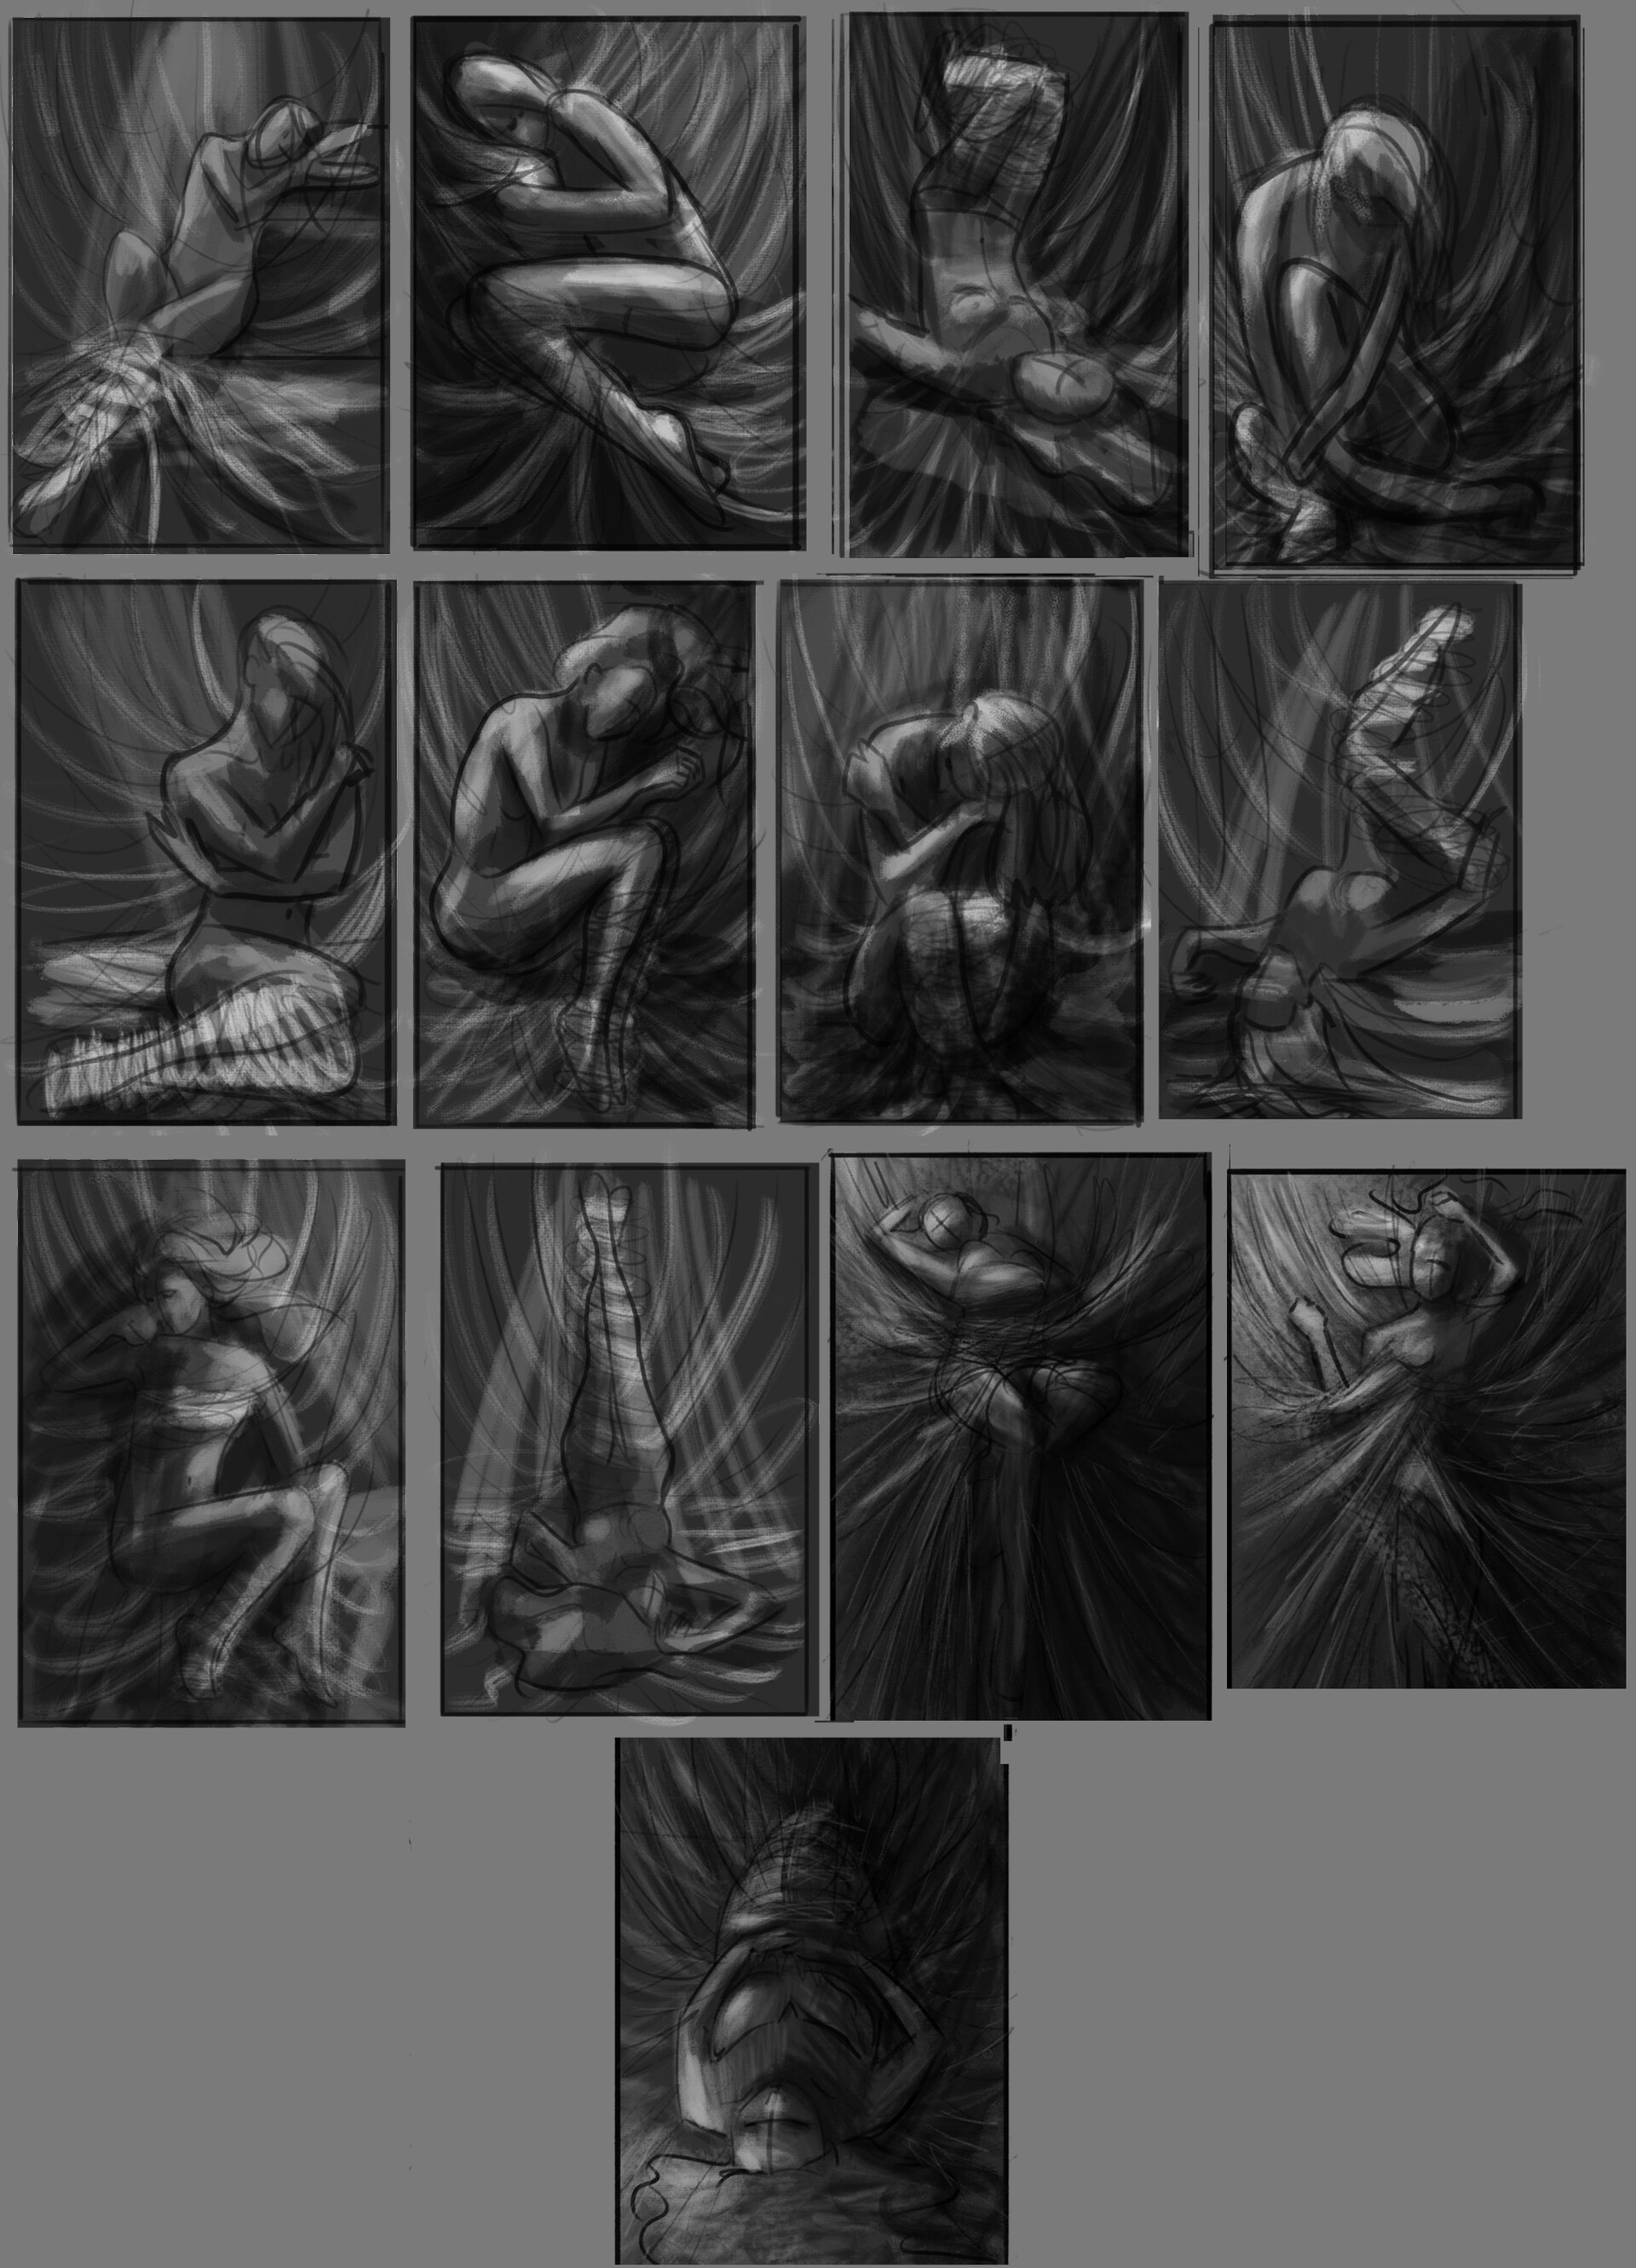 thumbnails exploration